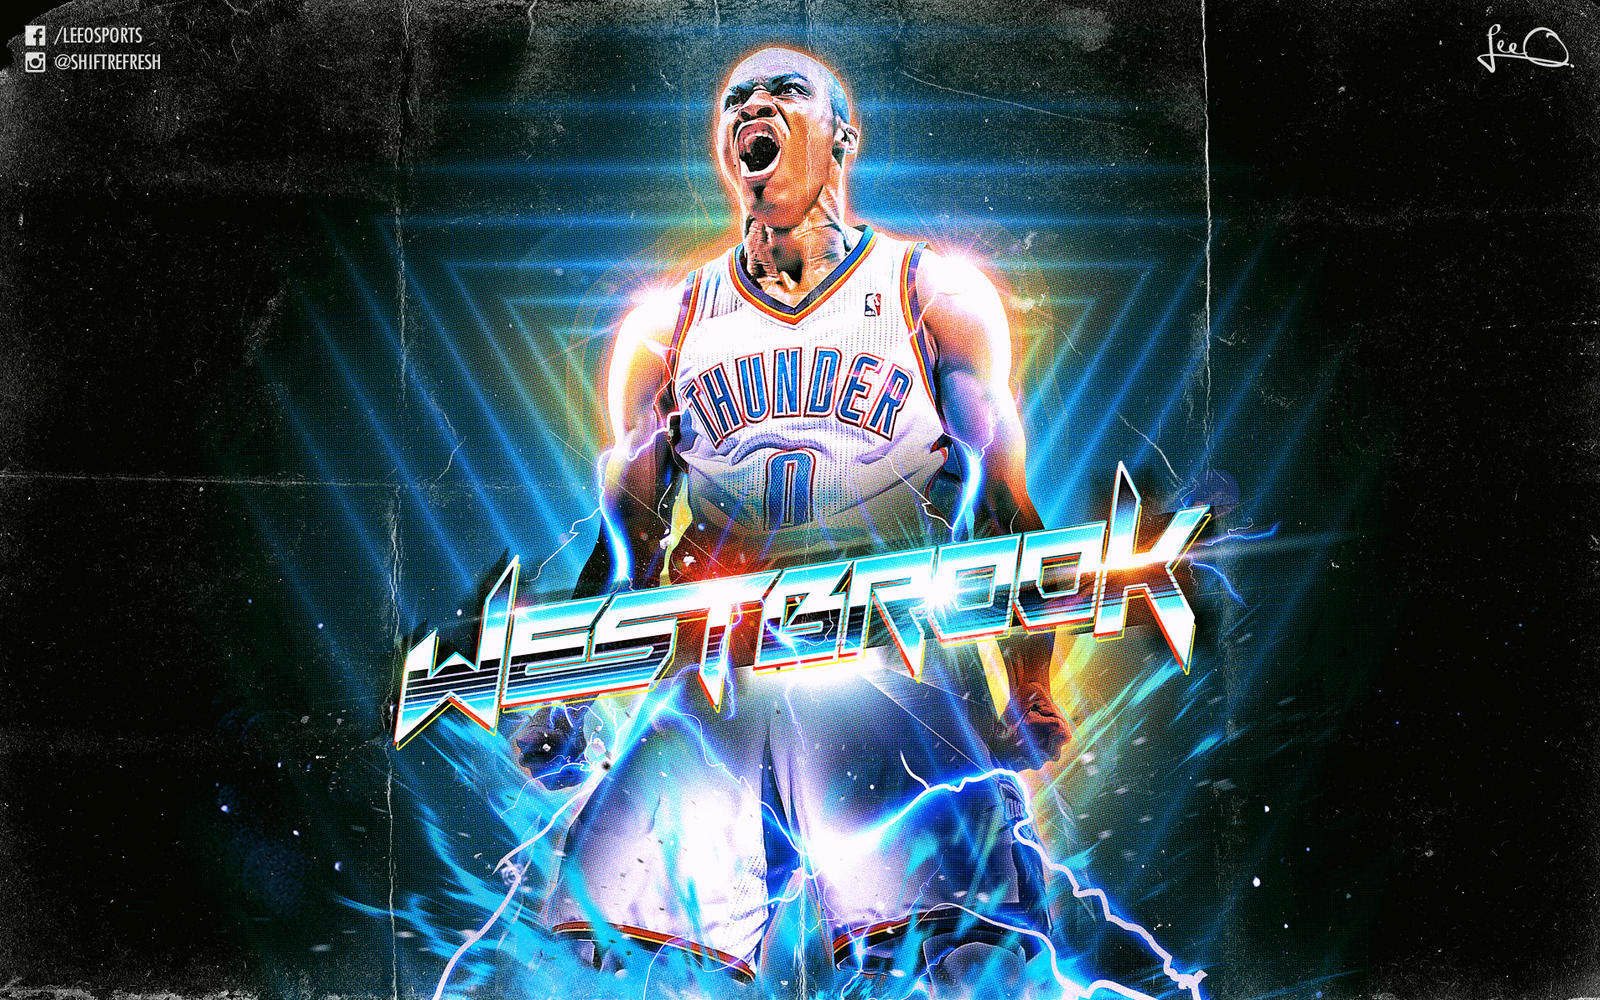 Russell Westbrook Retro NBA Wallpaper By Skythlee On